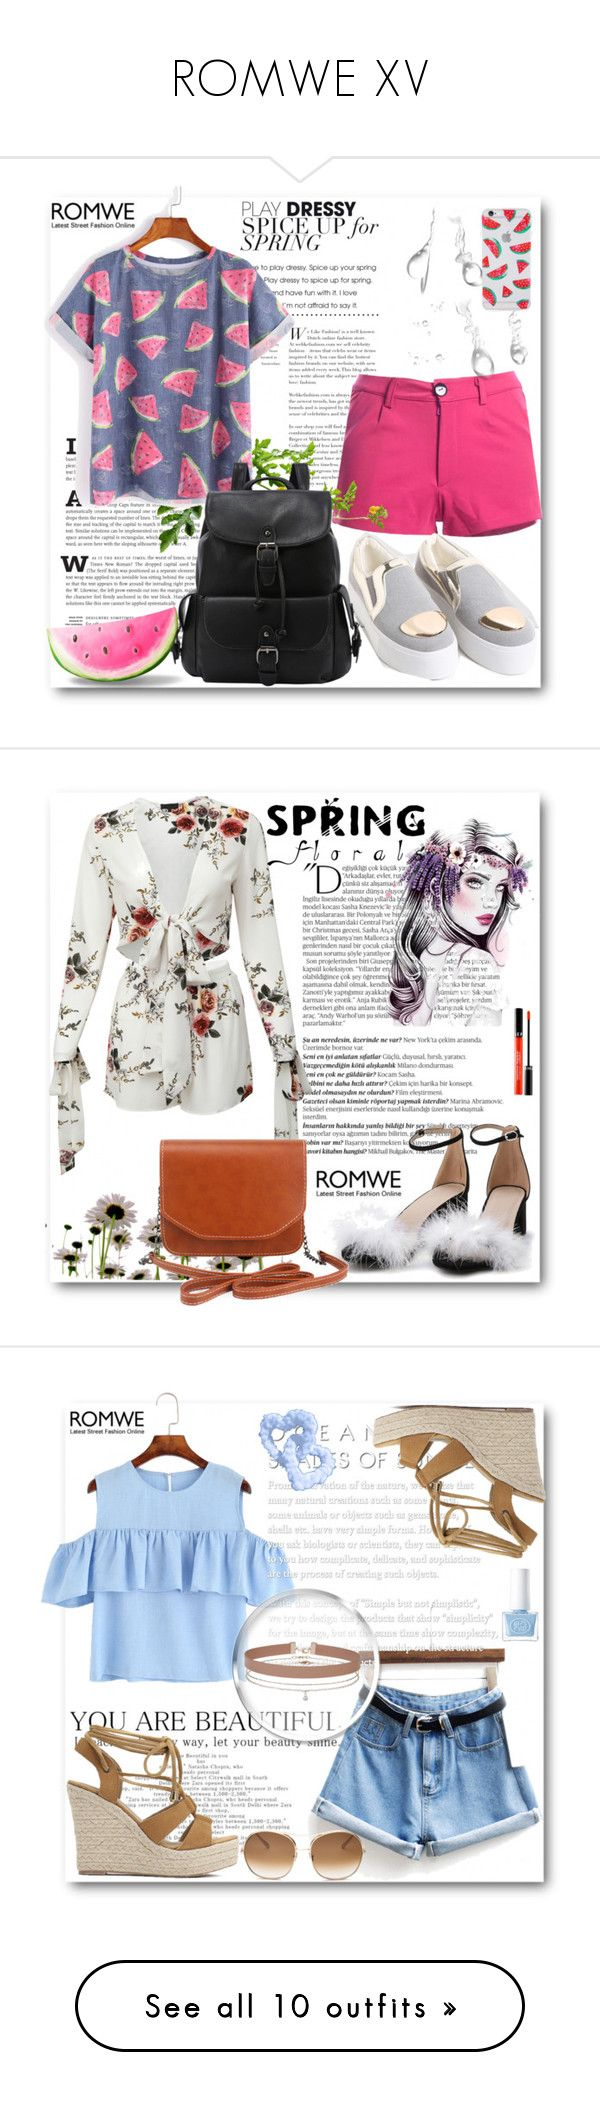 """ROMWE XV"" by belmina-v ❤ liked on Polyvore featuring Sonix, Balmain, Sephora Collection, Miss Selfridge, Chloé, Brewster Home Fashions, The French Bee, Rossetto, jcp and Trademark Fine Art"